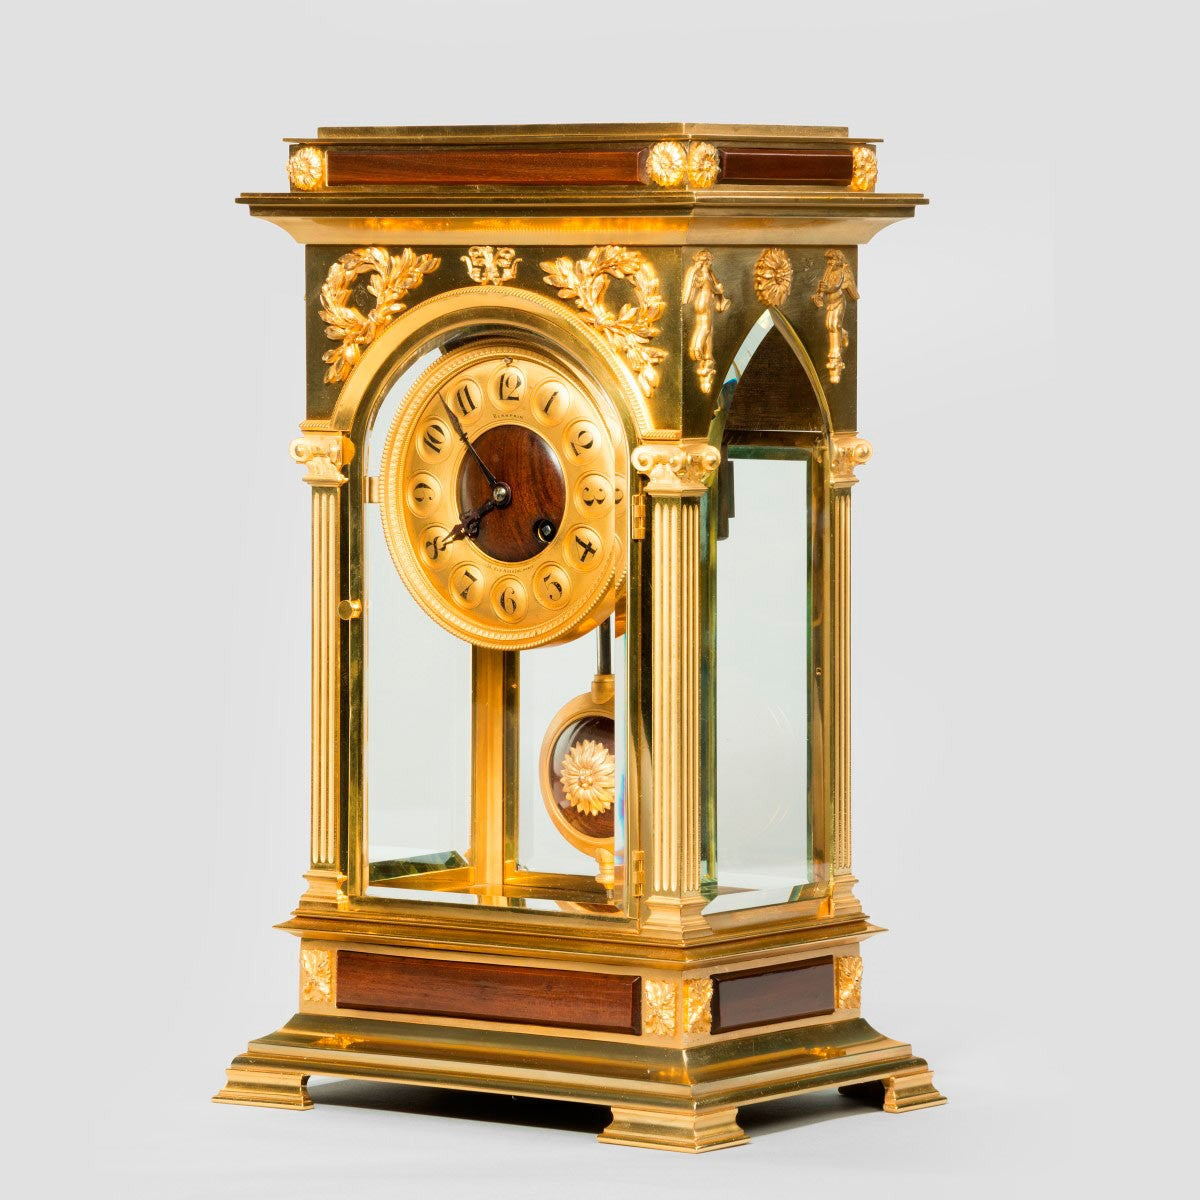 Unusual and superb quality rectangular four glass ormolu Unique clocks for sale